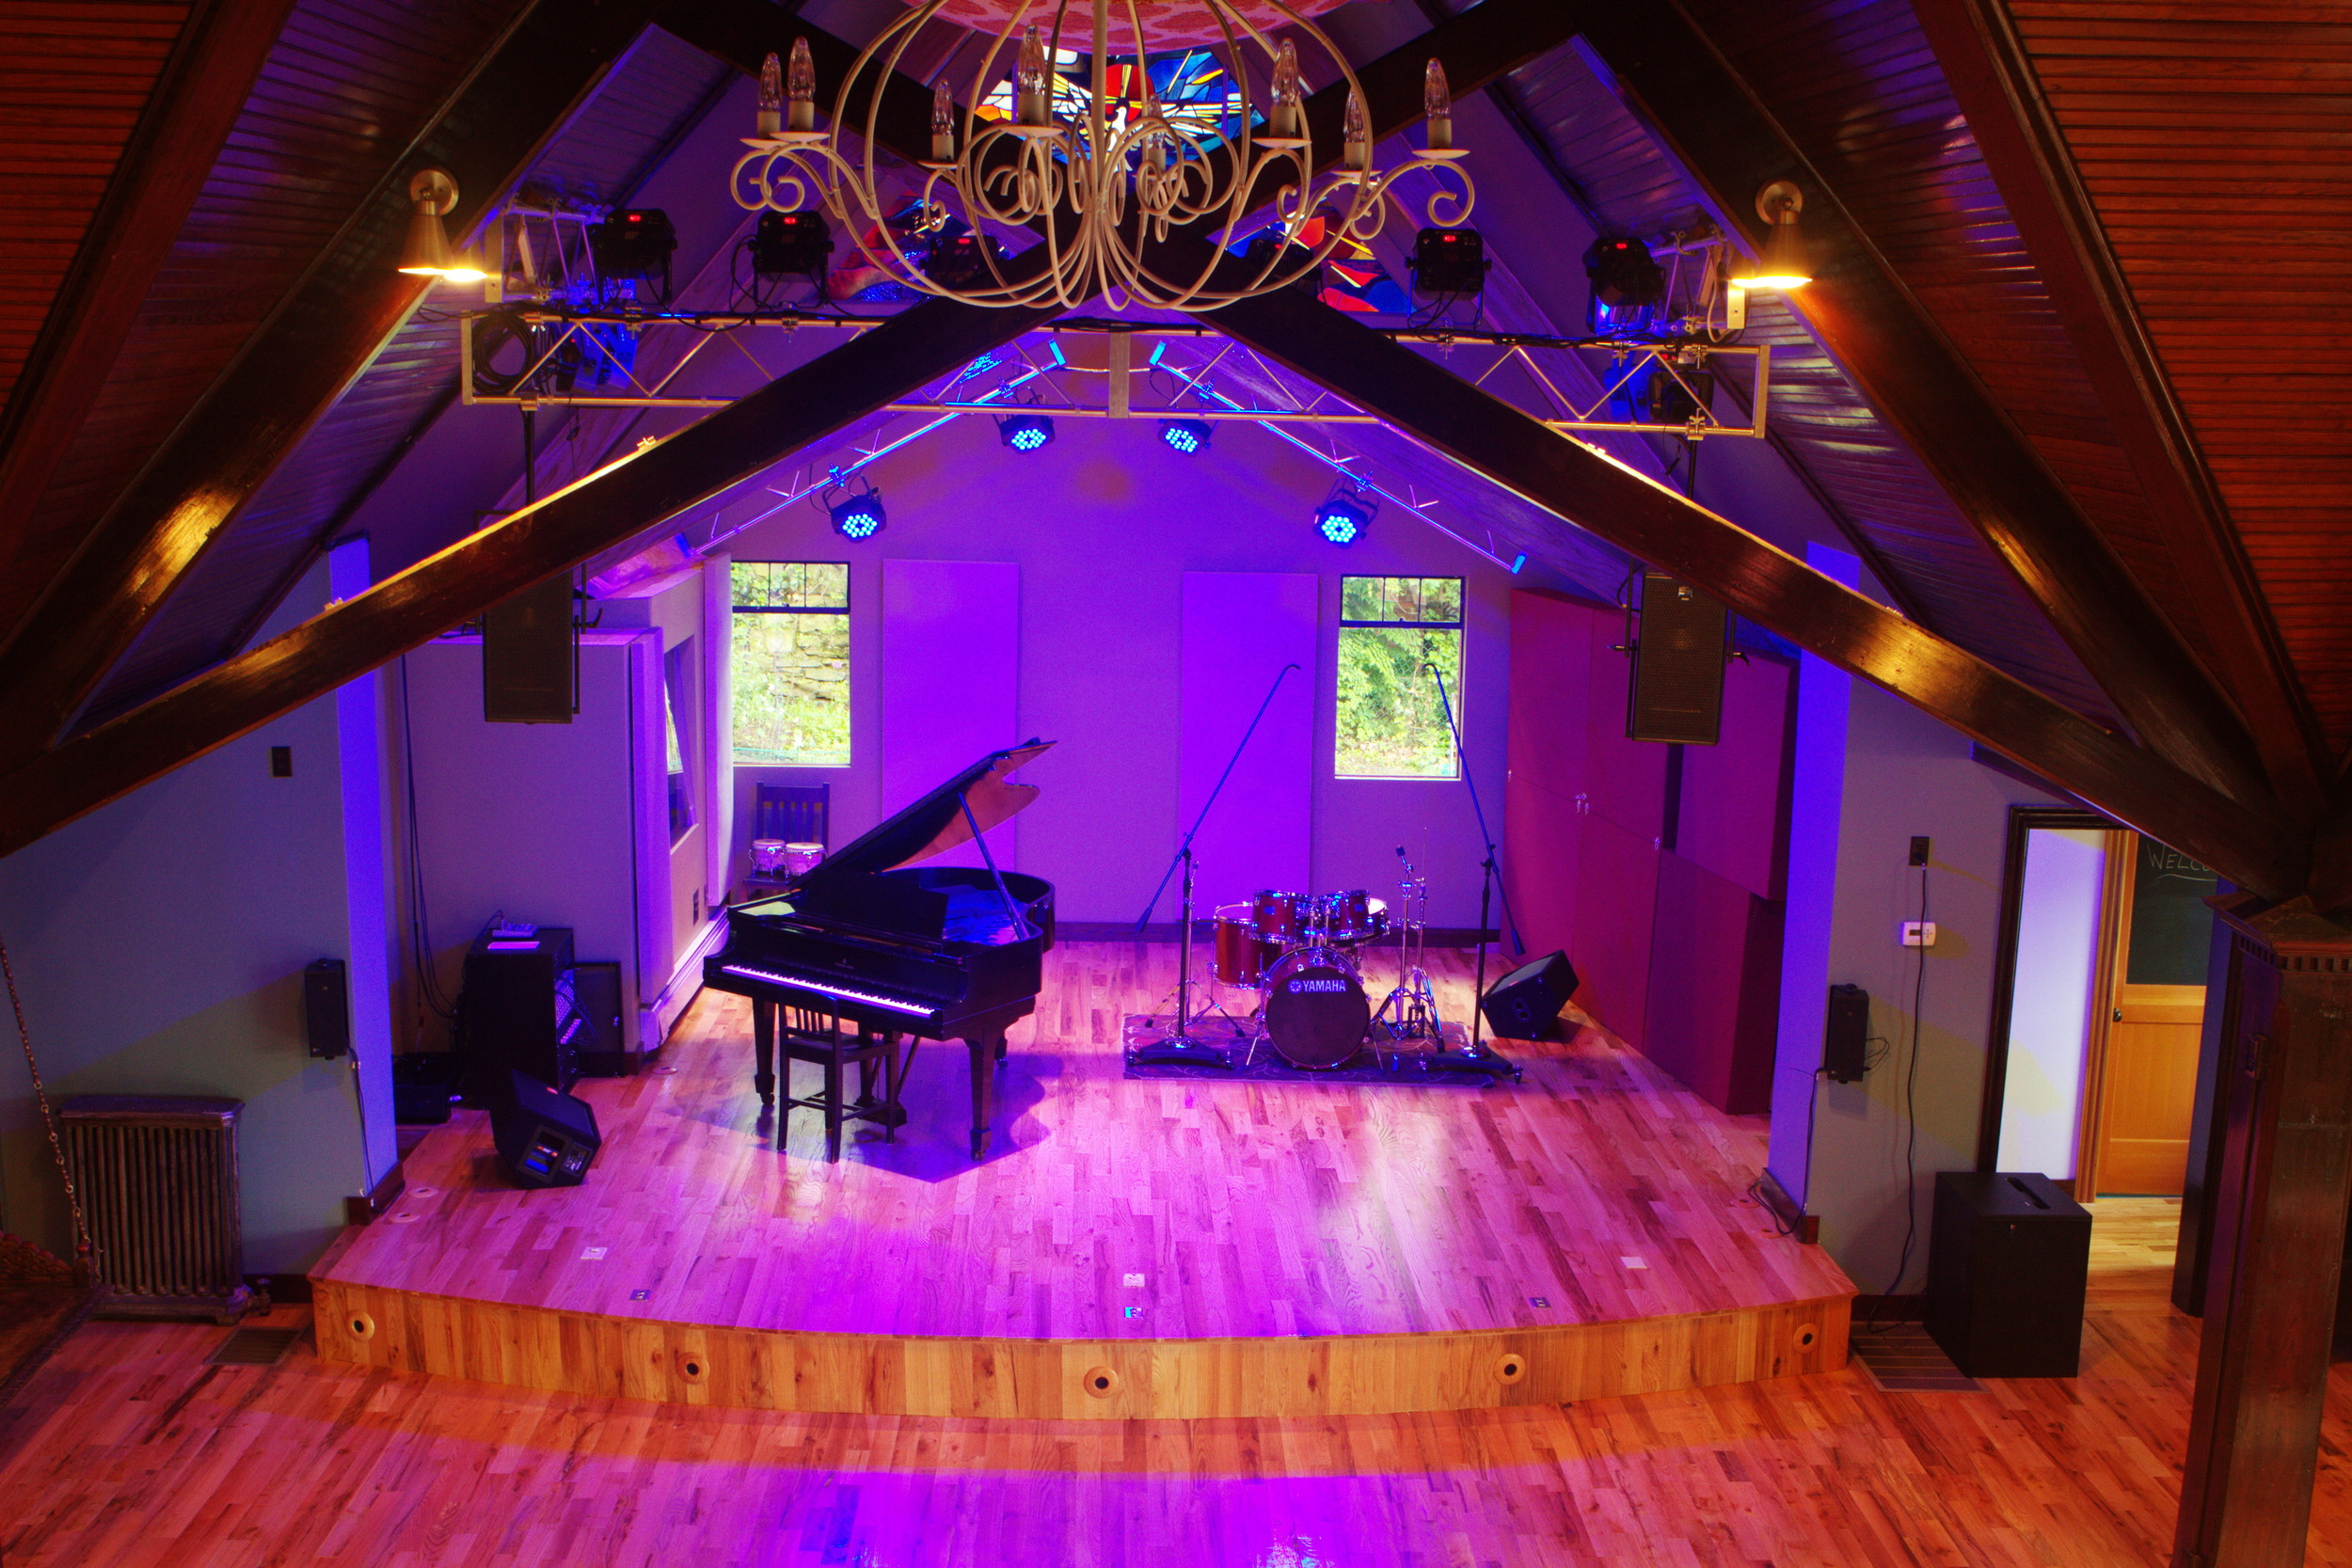 Architecture Photography: Music Studio